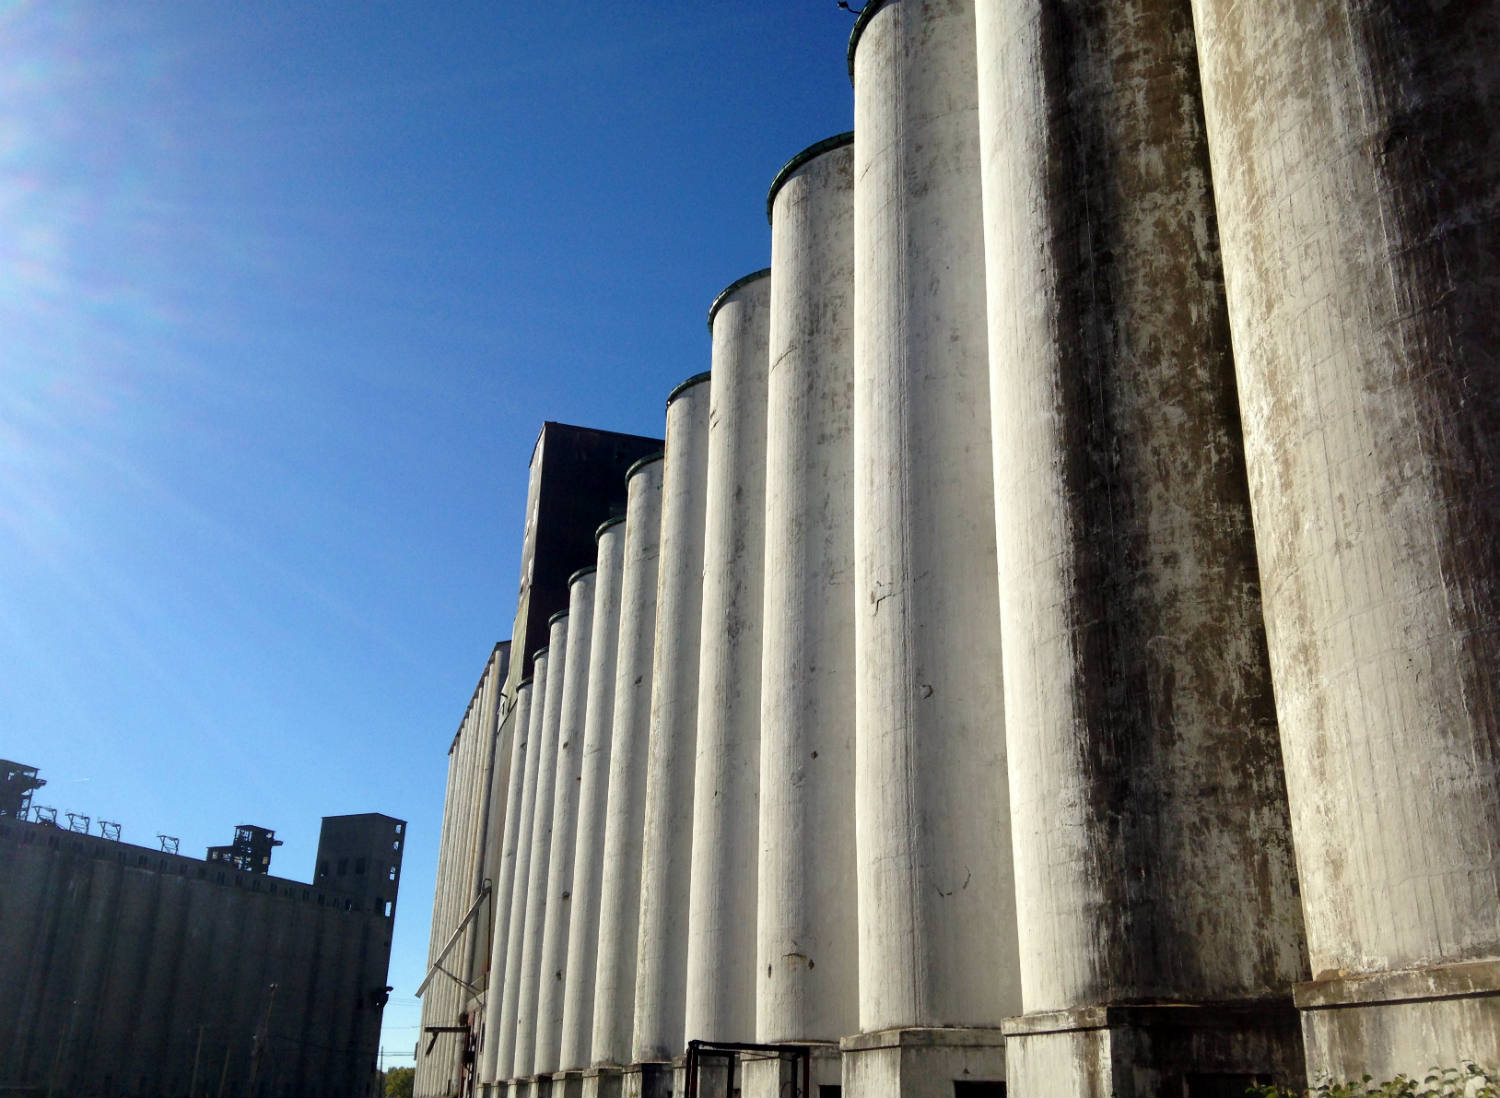 Silo City (American Malting Company Silo) in Buffalo, NY